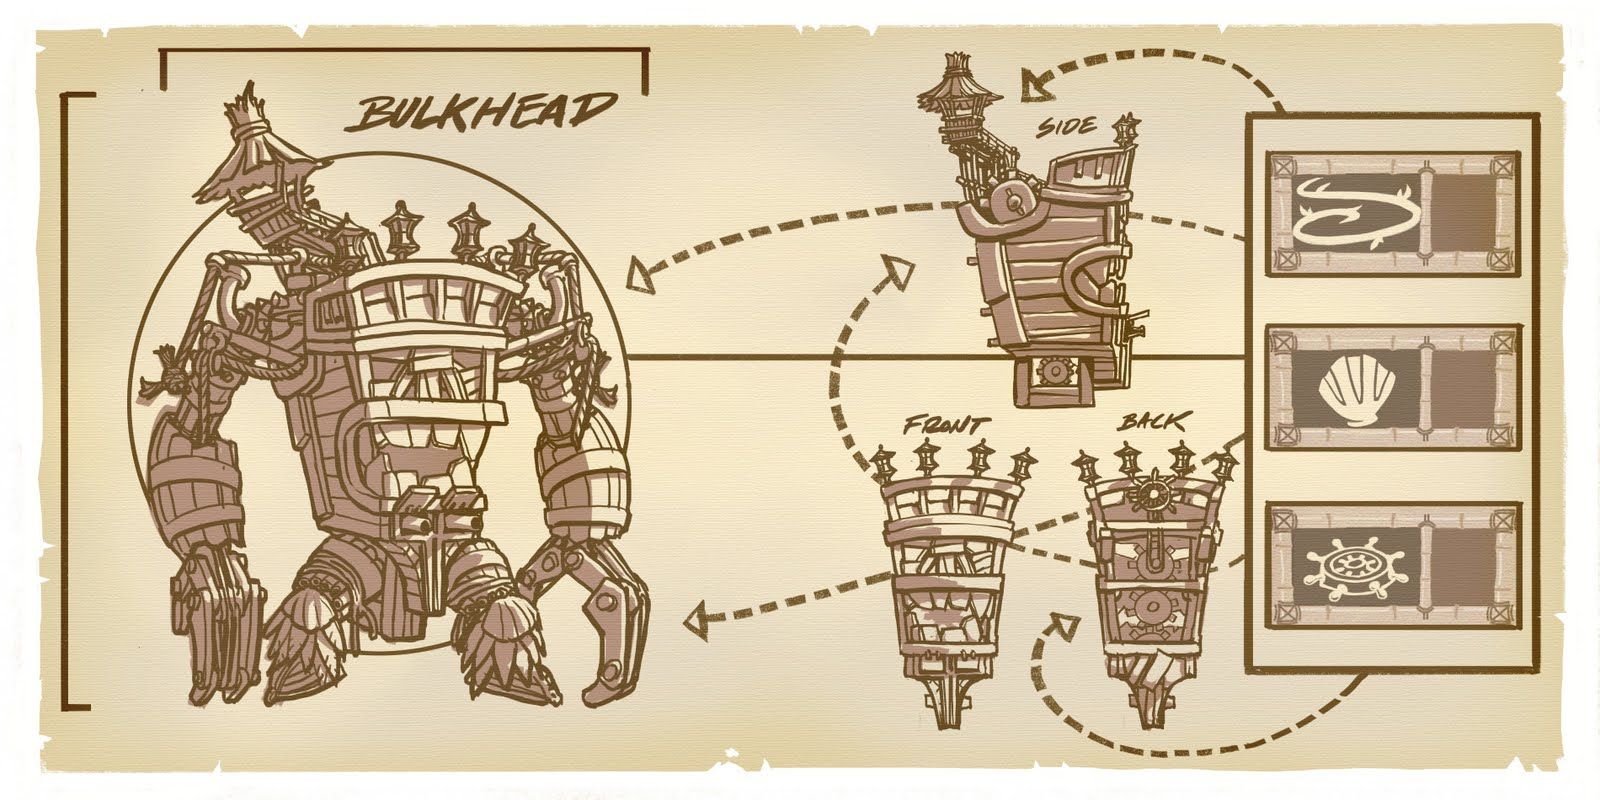 [Bulkhead_Blueprint.jpg]